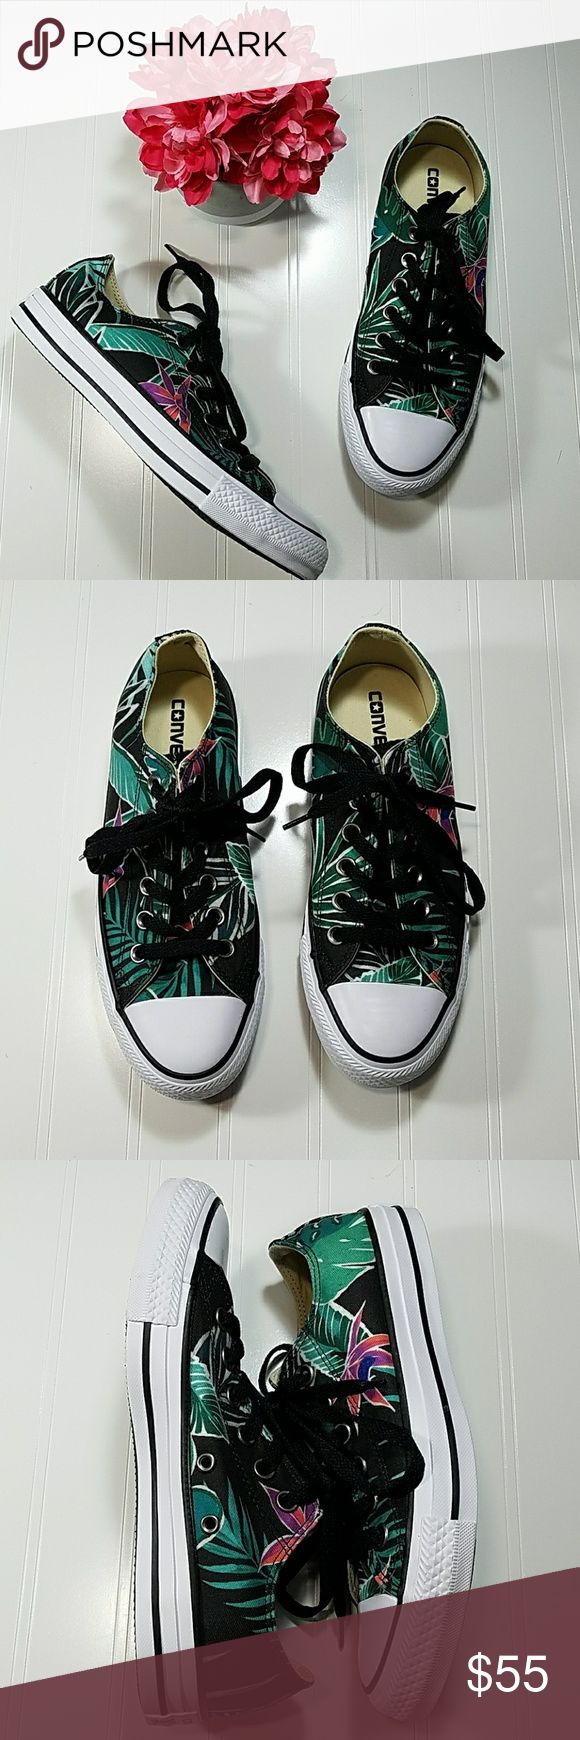 🌼Converse floral tennis shoes Floral print with black laces, white around the bottom with black stripe. NEW IN THE BOX. Ships in original box.  Sz 7 Converse Shoes Athletic Shoes